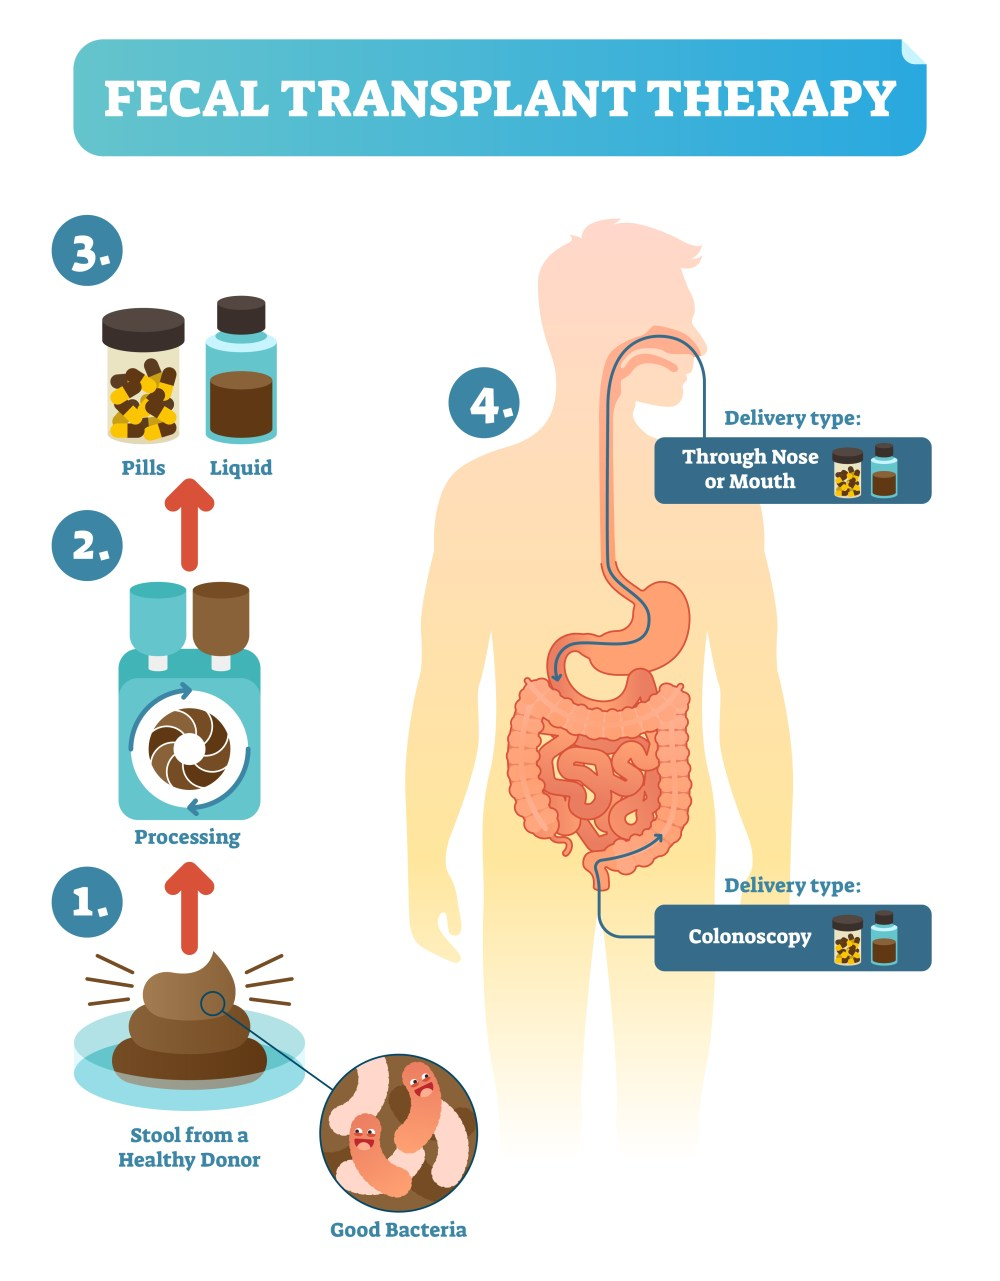 fecal transplant therapy taking healthy stool from a donor and processing and delivering it to a sick recipient vectormine shutterstock com [ 1000 x 1281 Pixel ]